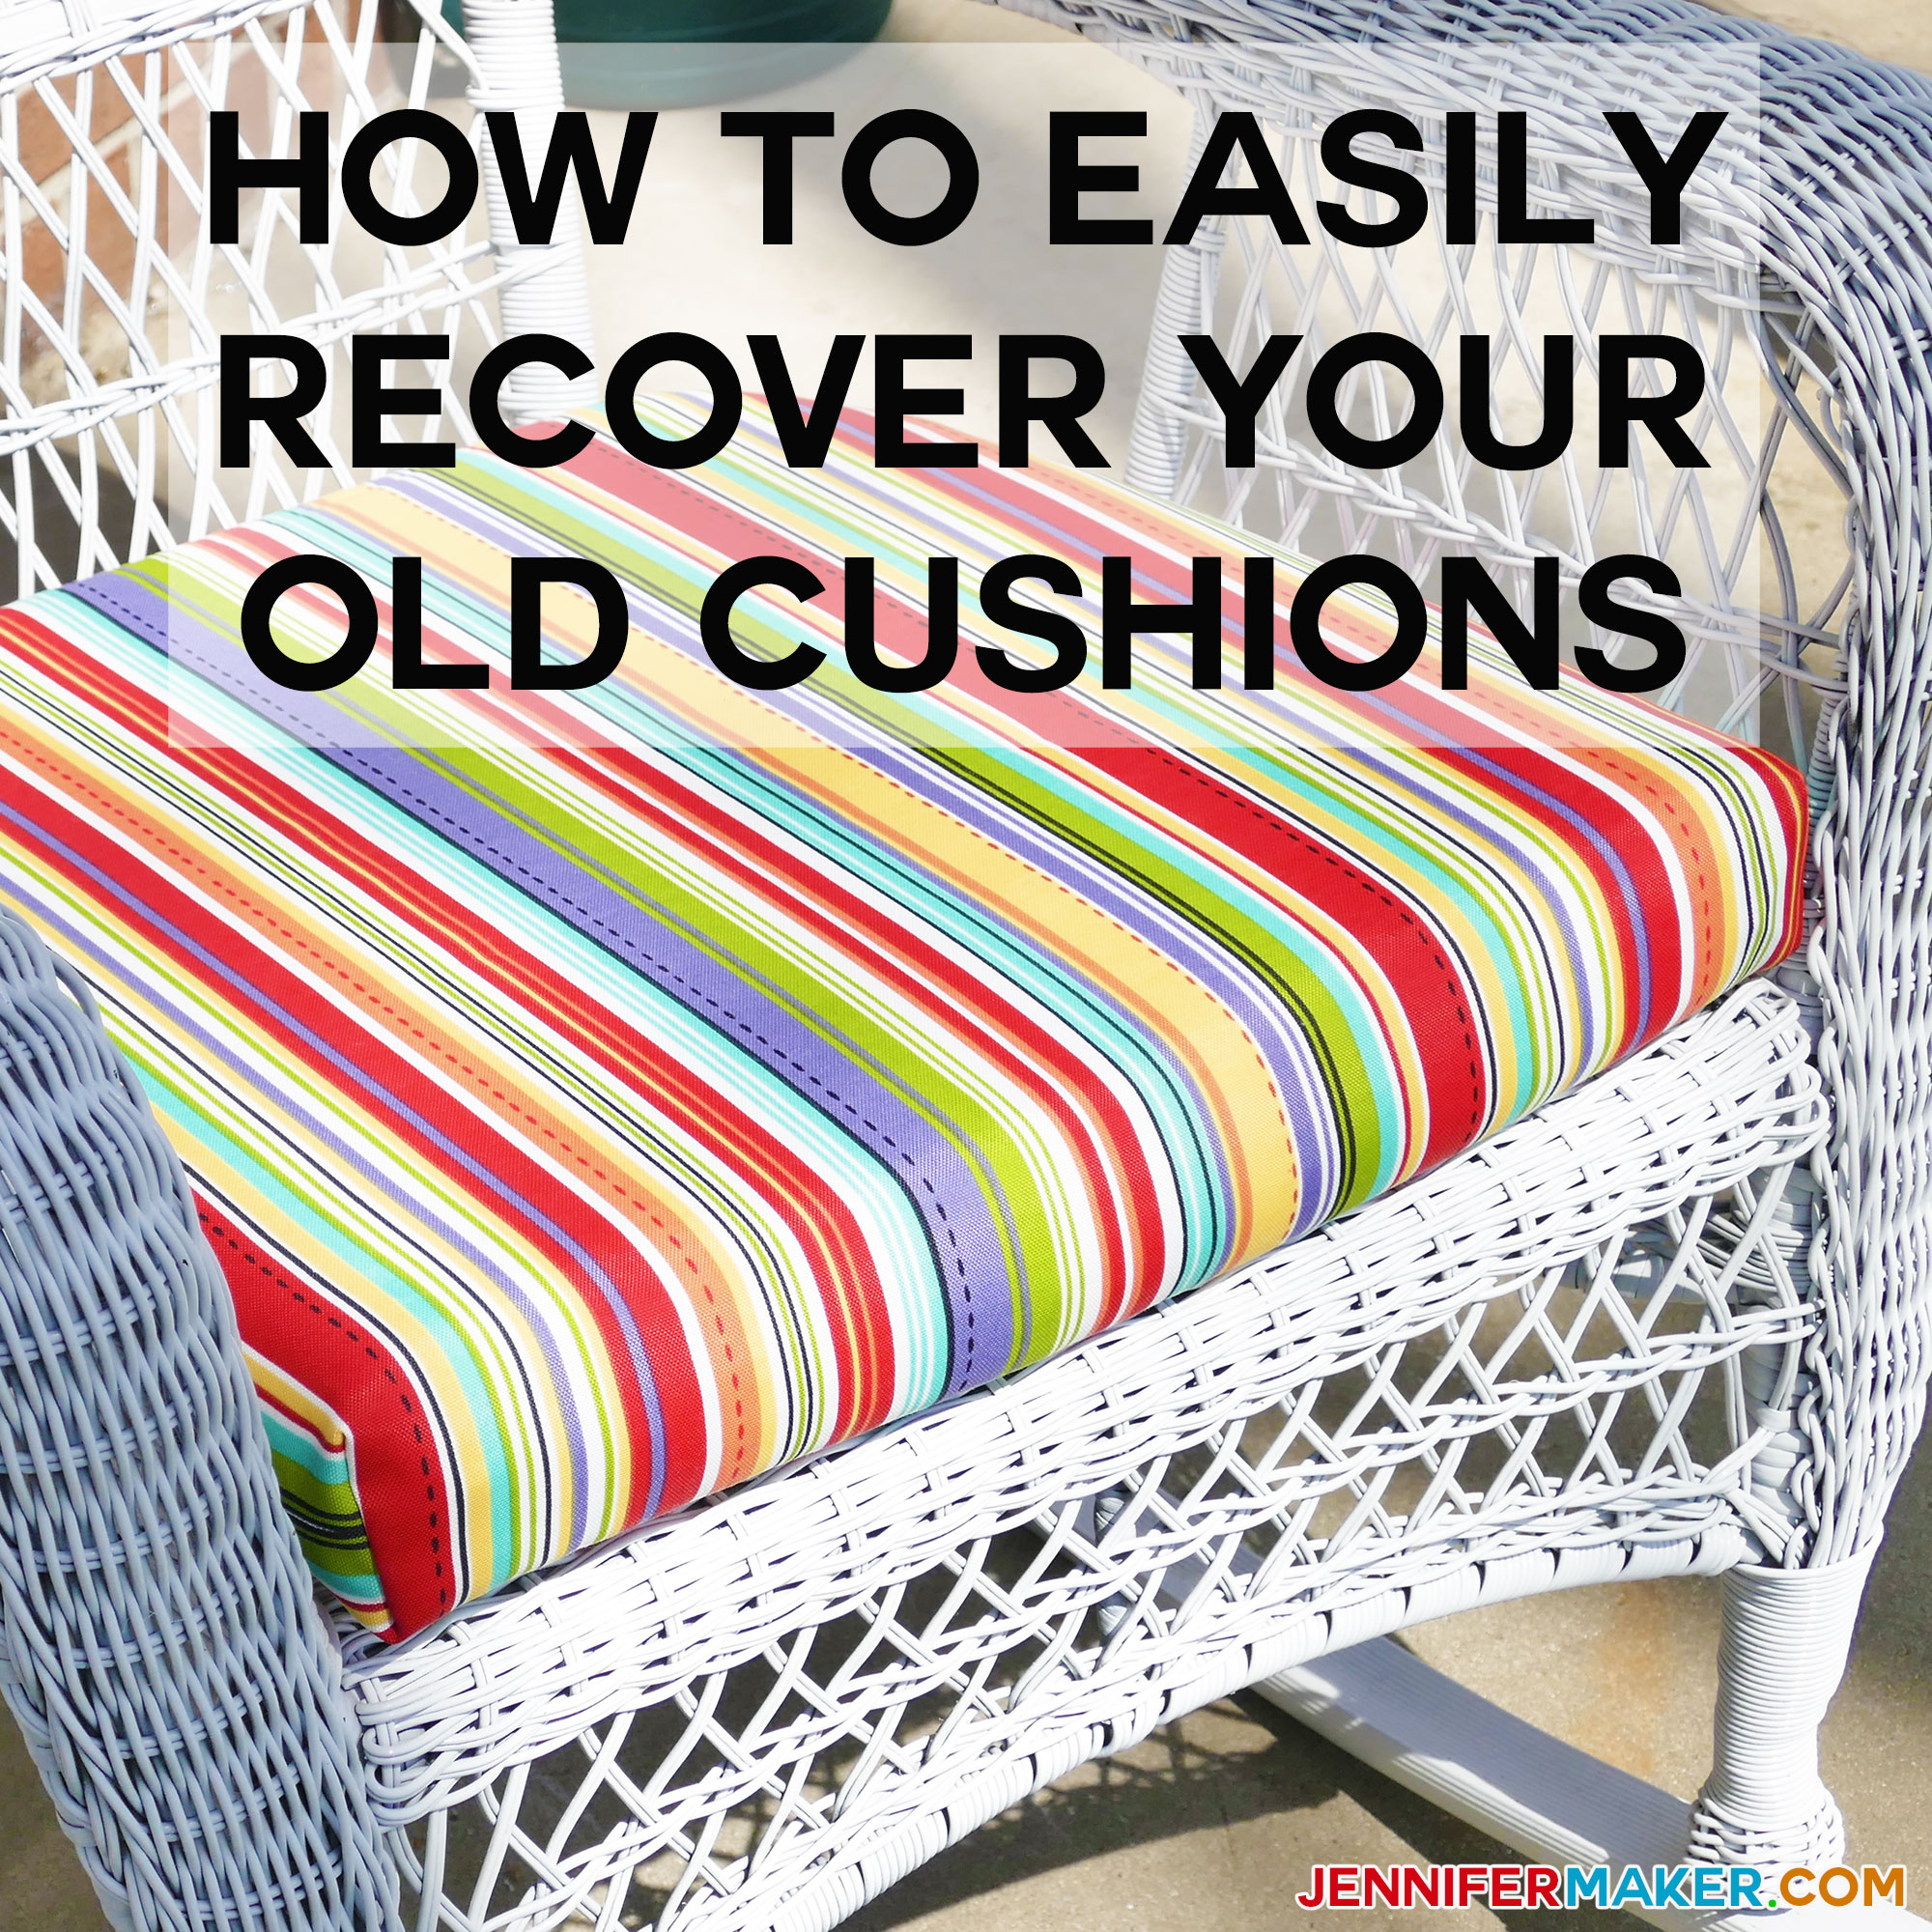 How To Recover Your Old Outdoor Cushions Easily U0026 Quickly |  JenniferMaker.com